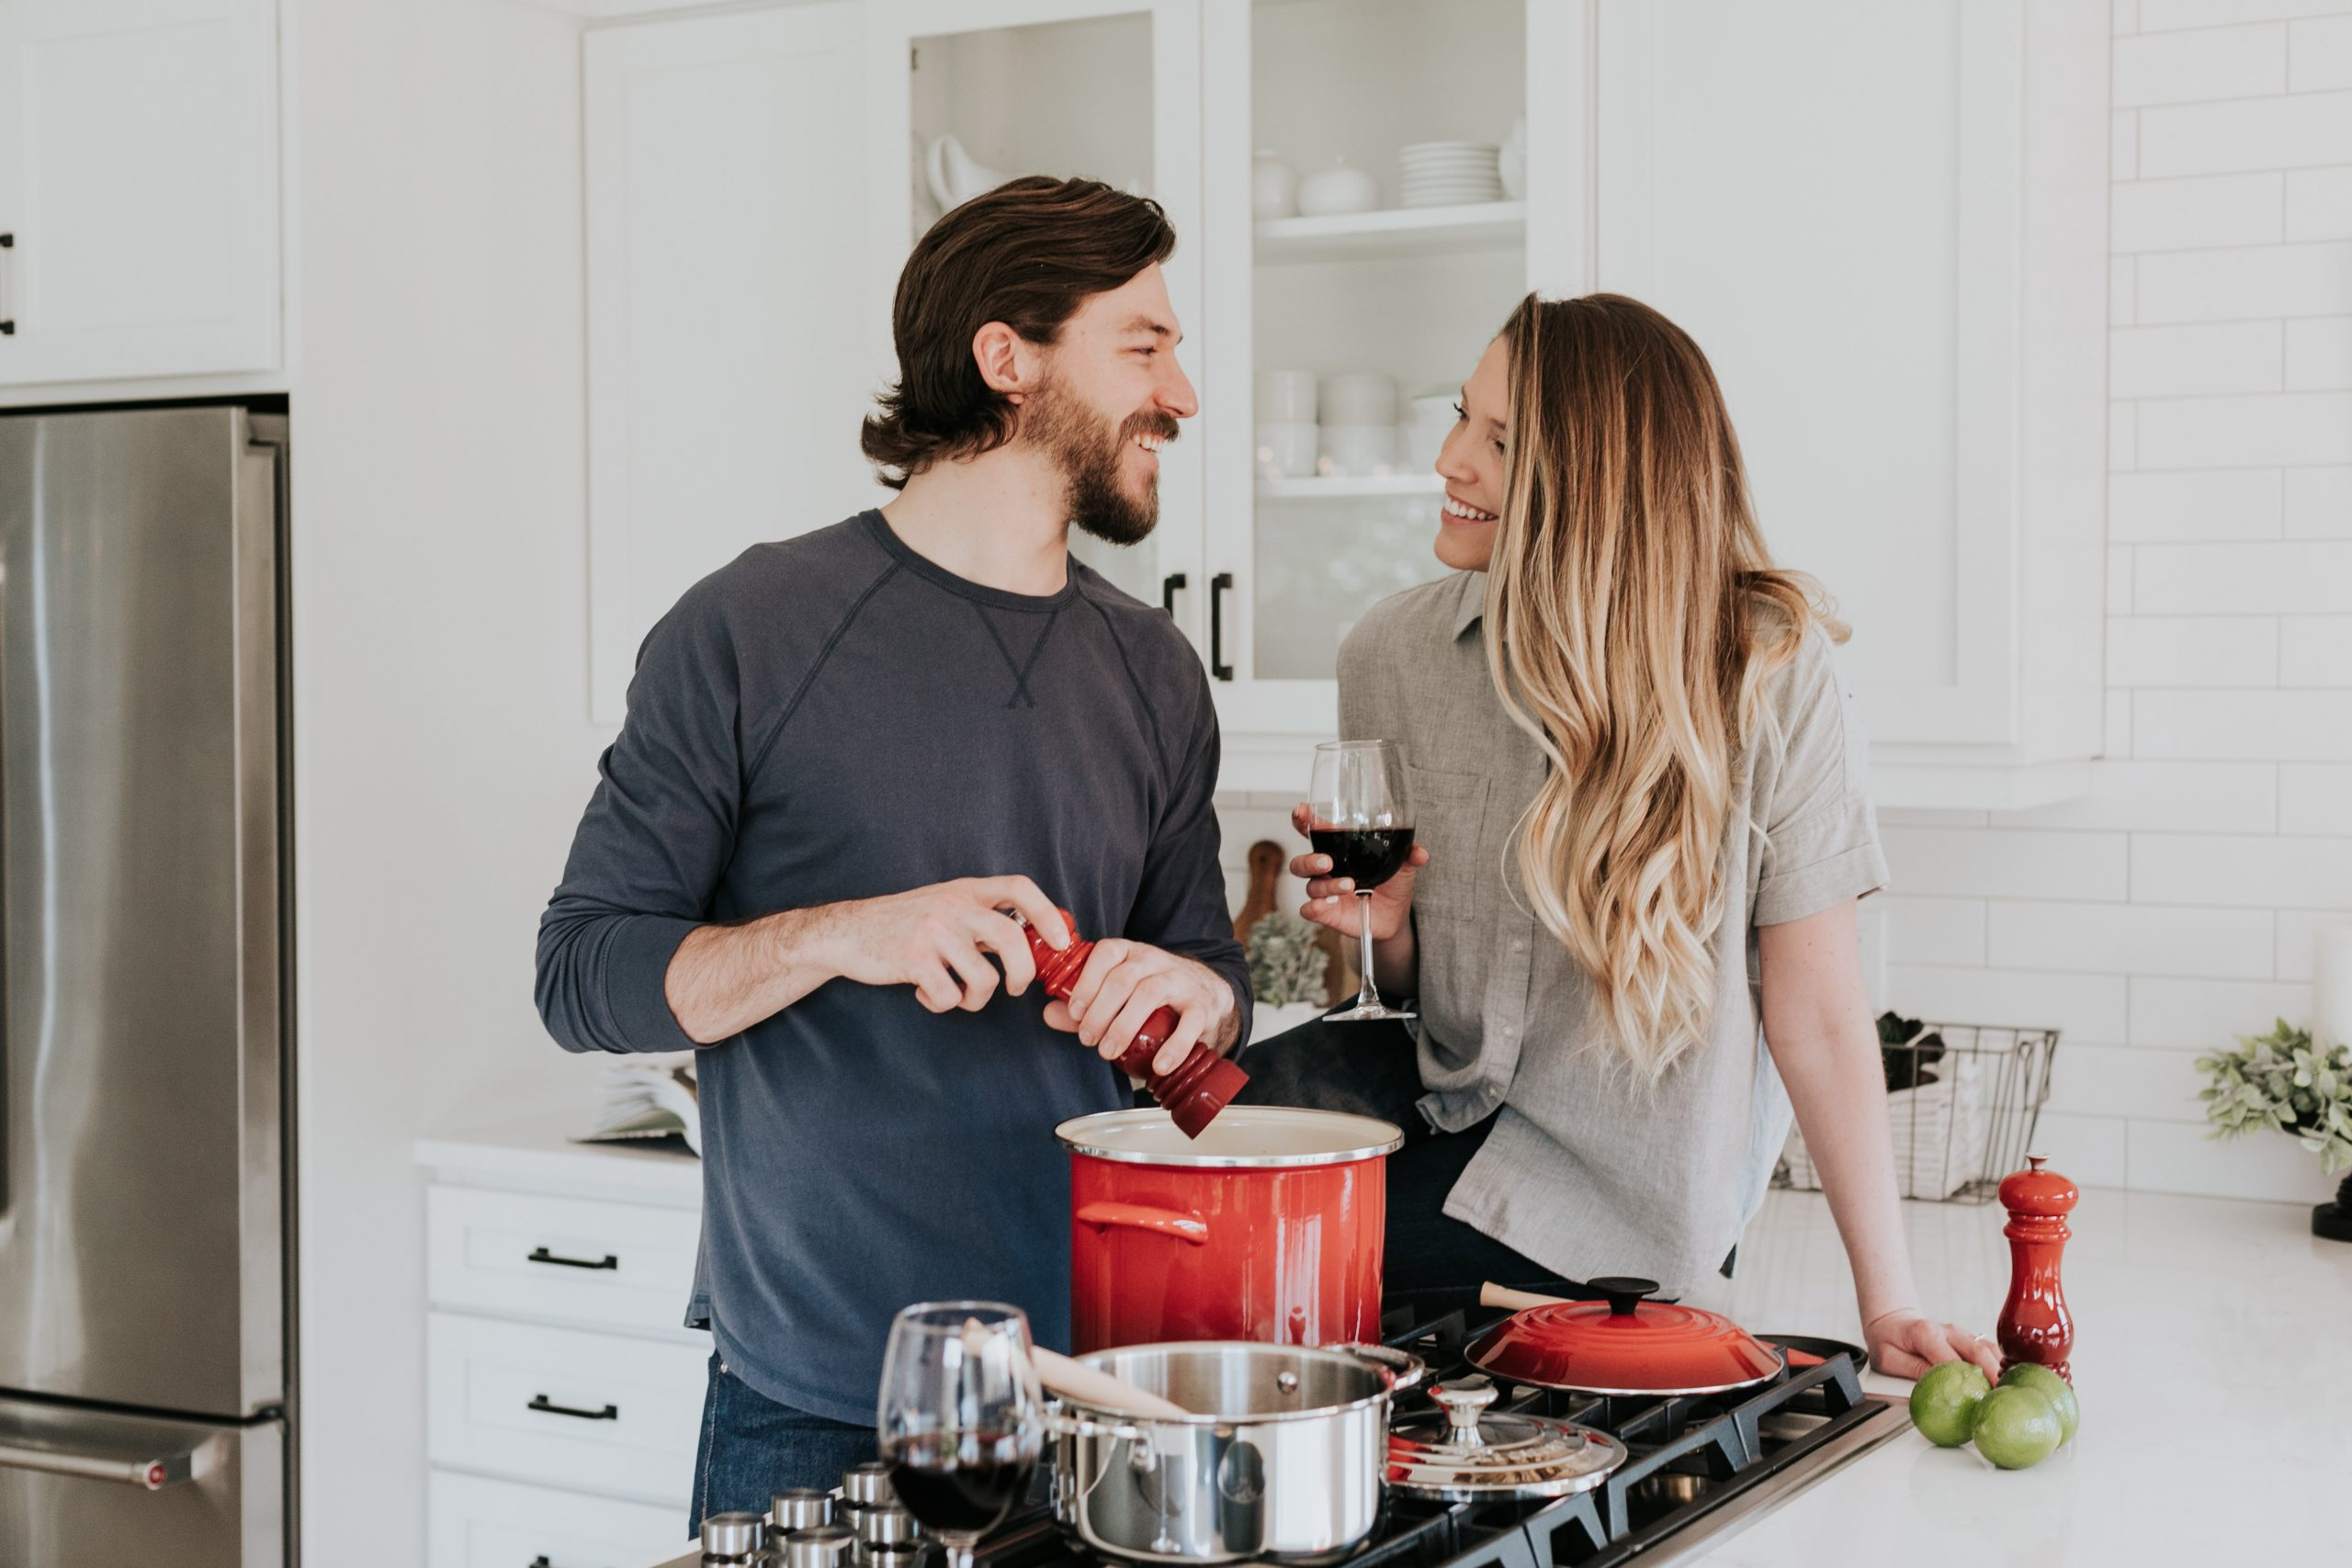 couple looking at each other lovingly as the man is cooking a meal on the stove